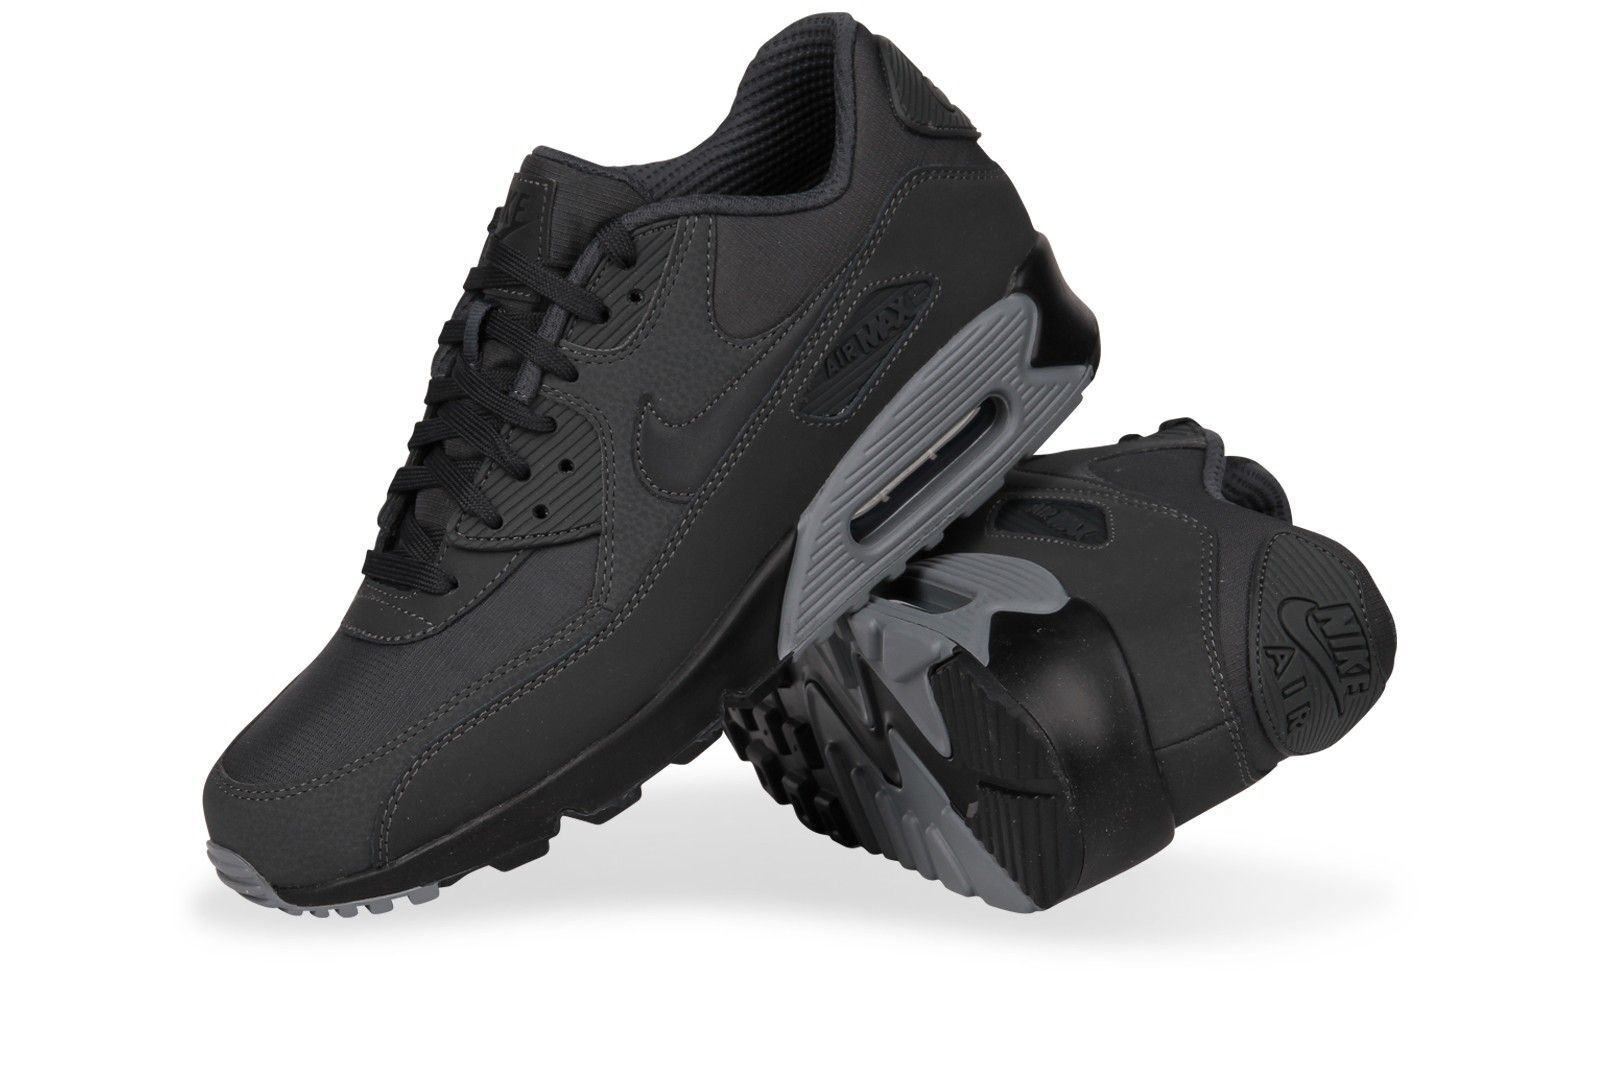 2016 AIR MAX 90 QS ANTHRACITE COOL GREY sz 11.5 BRAND NEW SUPER RARE